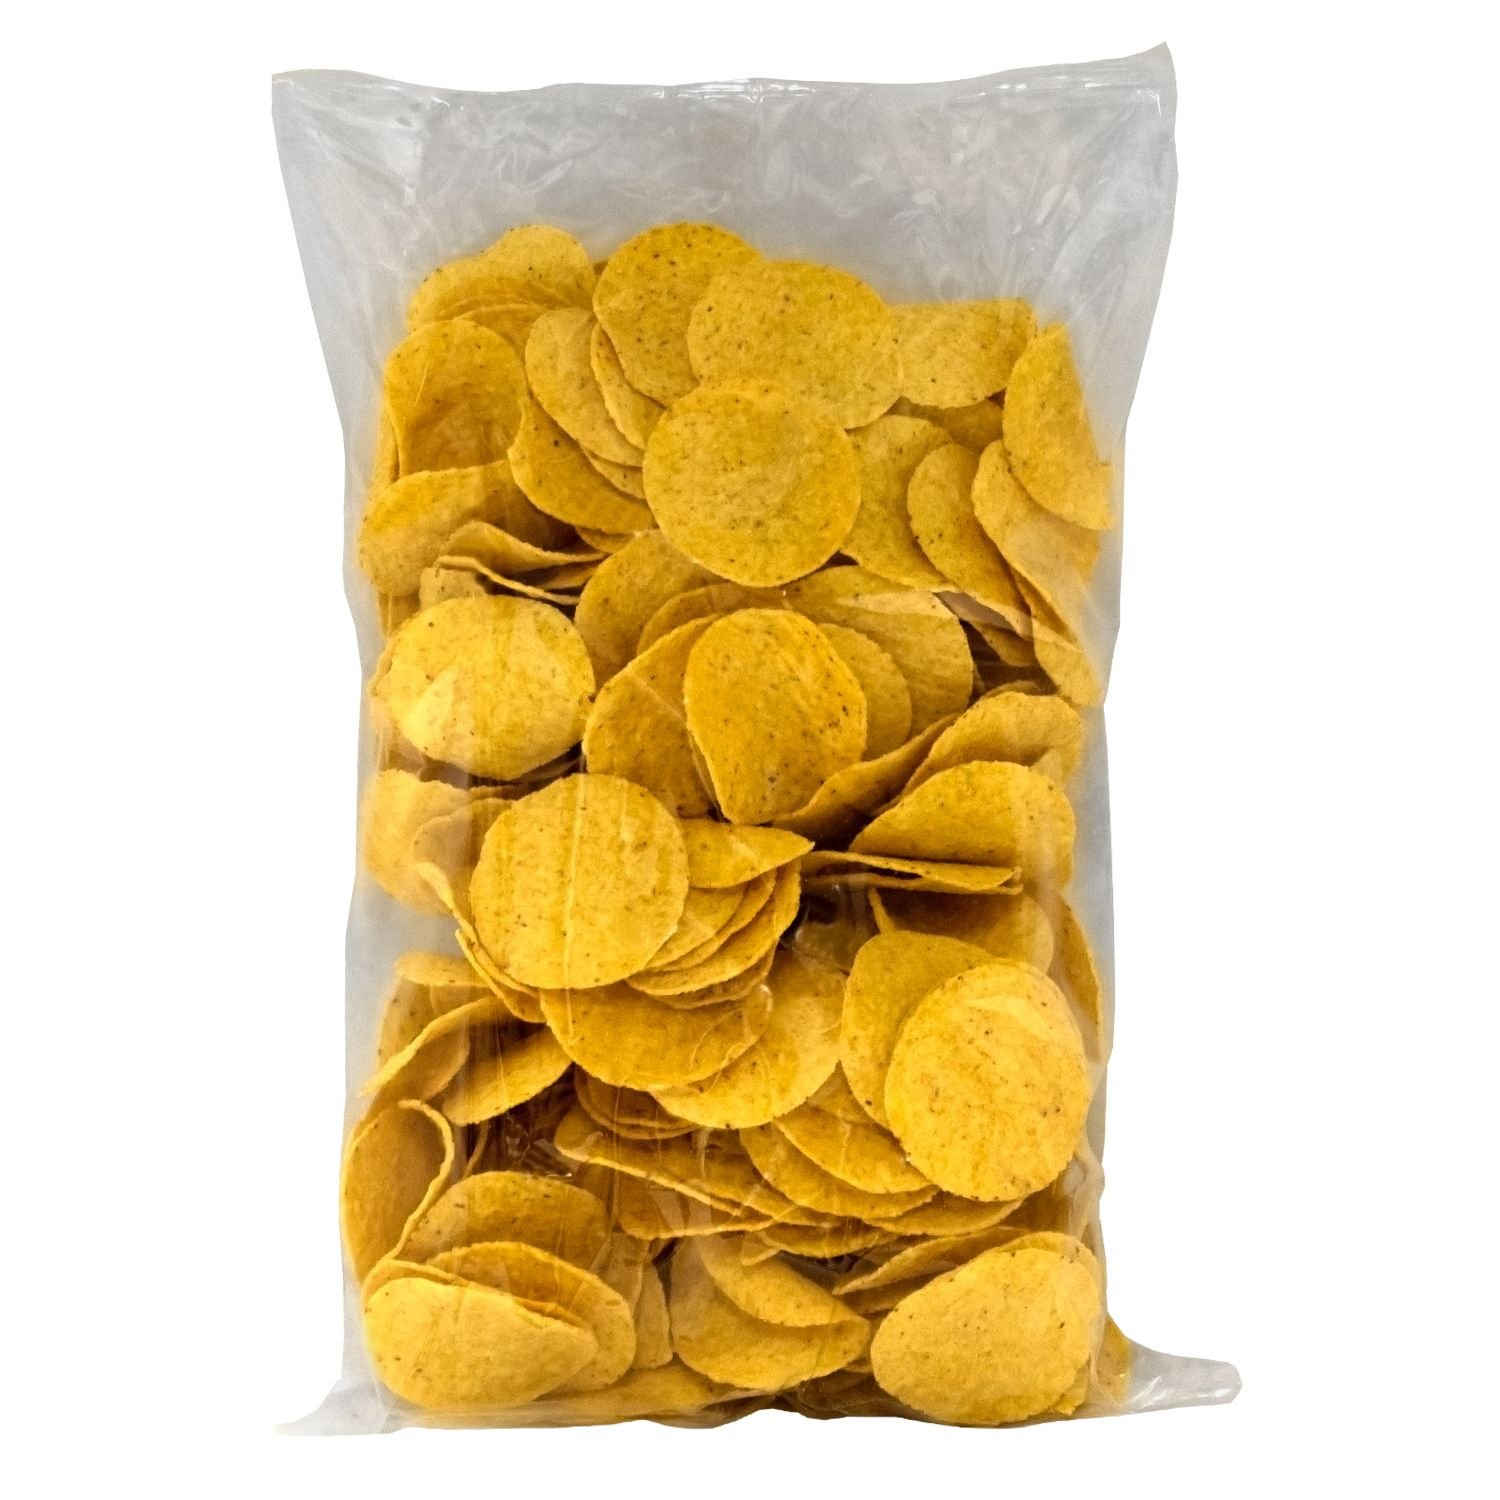 Gold Medal Products El Nacho Grande Bulk Tortilla Chips - 4/24oz bags by Medal